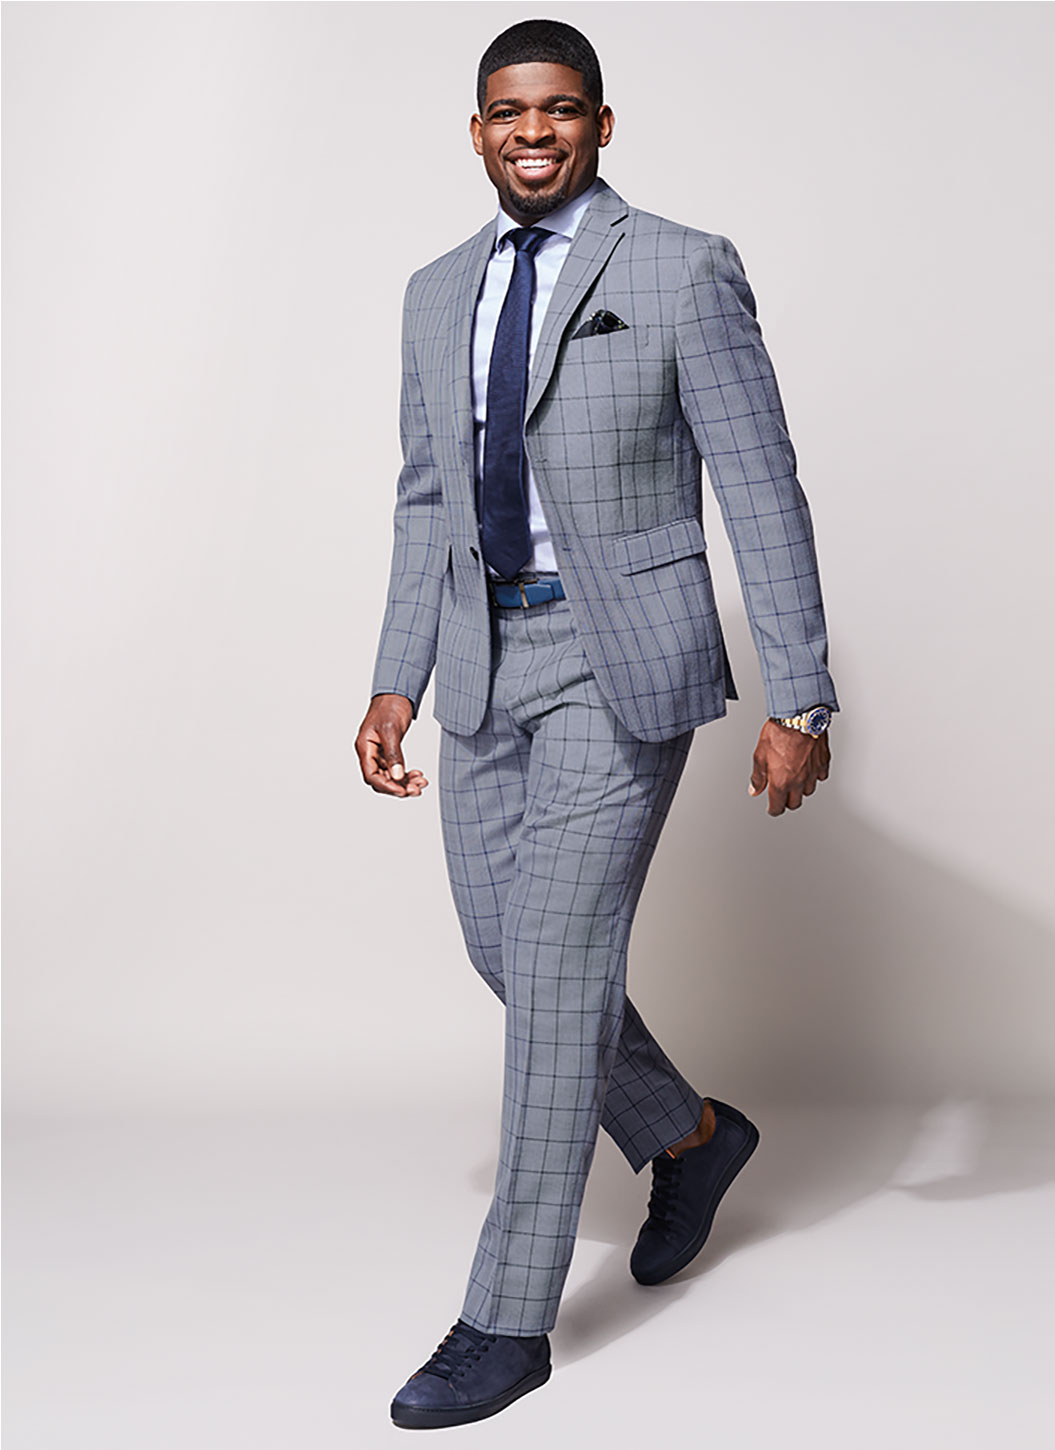 PK Subban in a Window Pane Suit